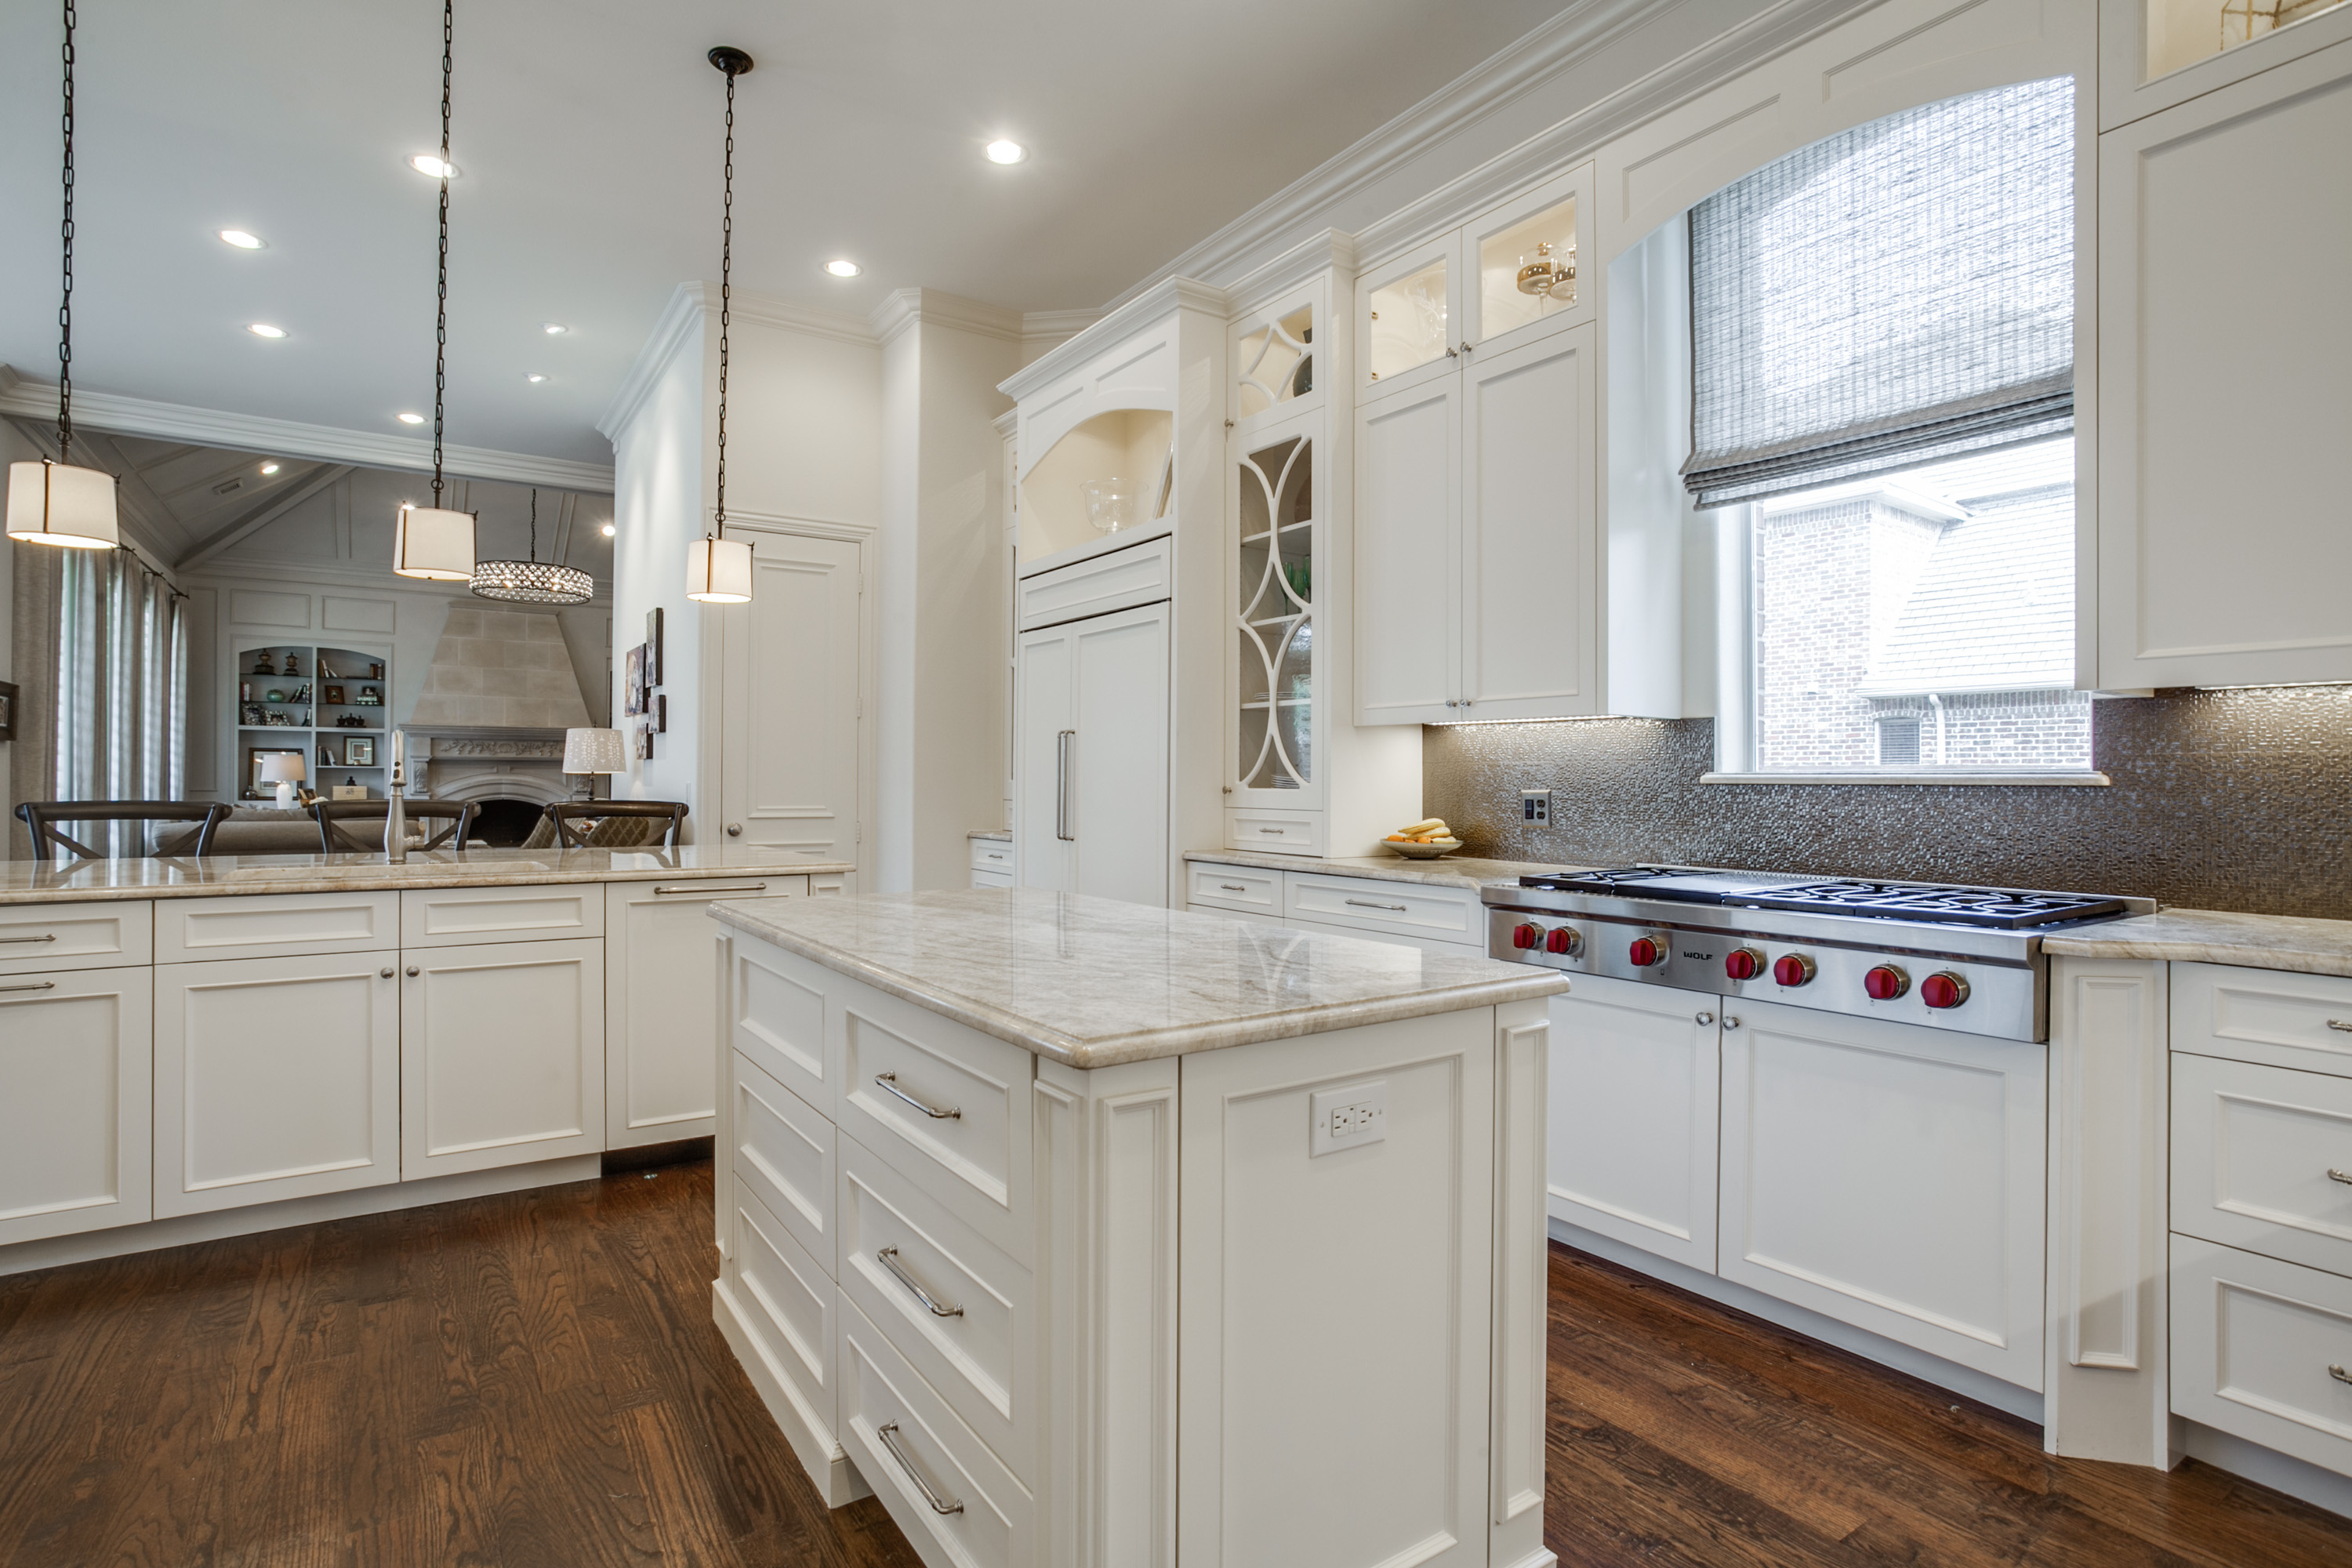 remodel works bath & kitchen white faucet j williams construction and remodeling inc our work